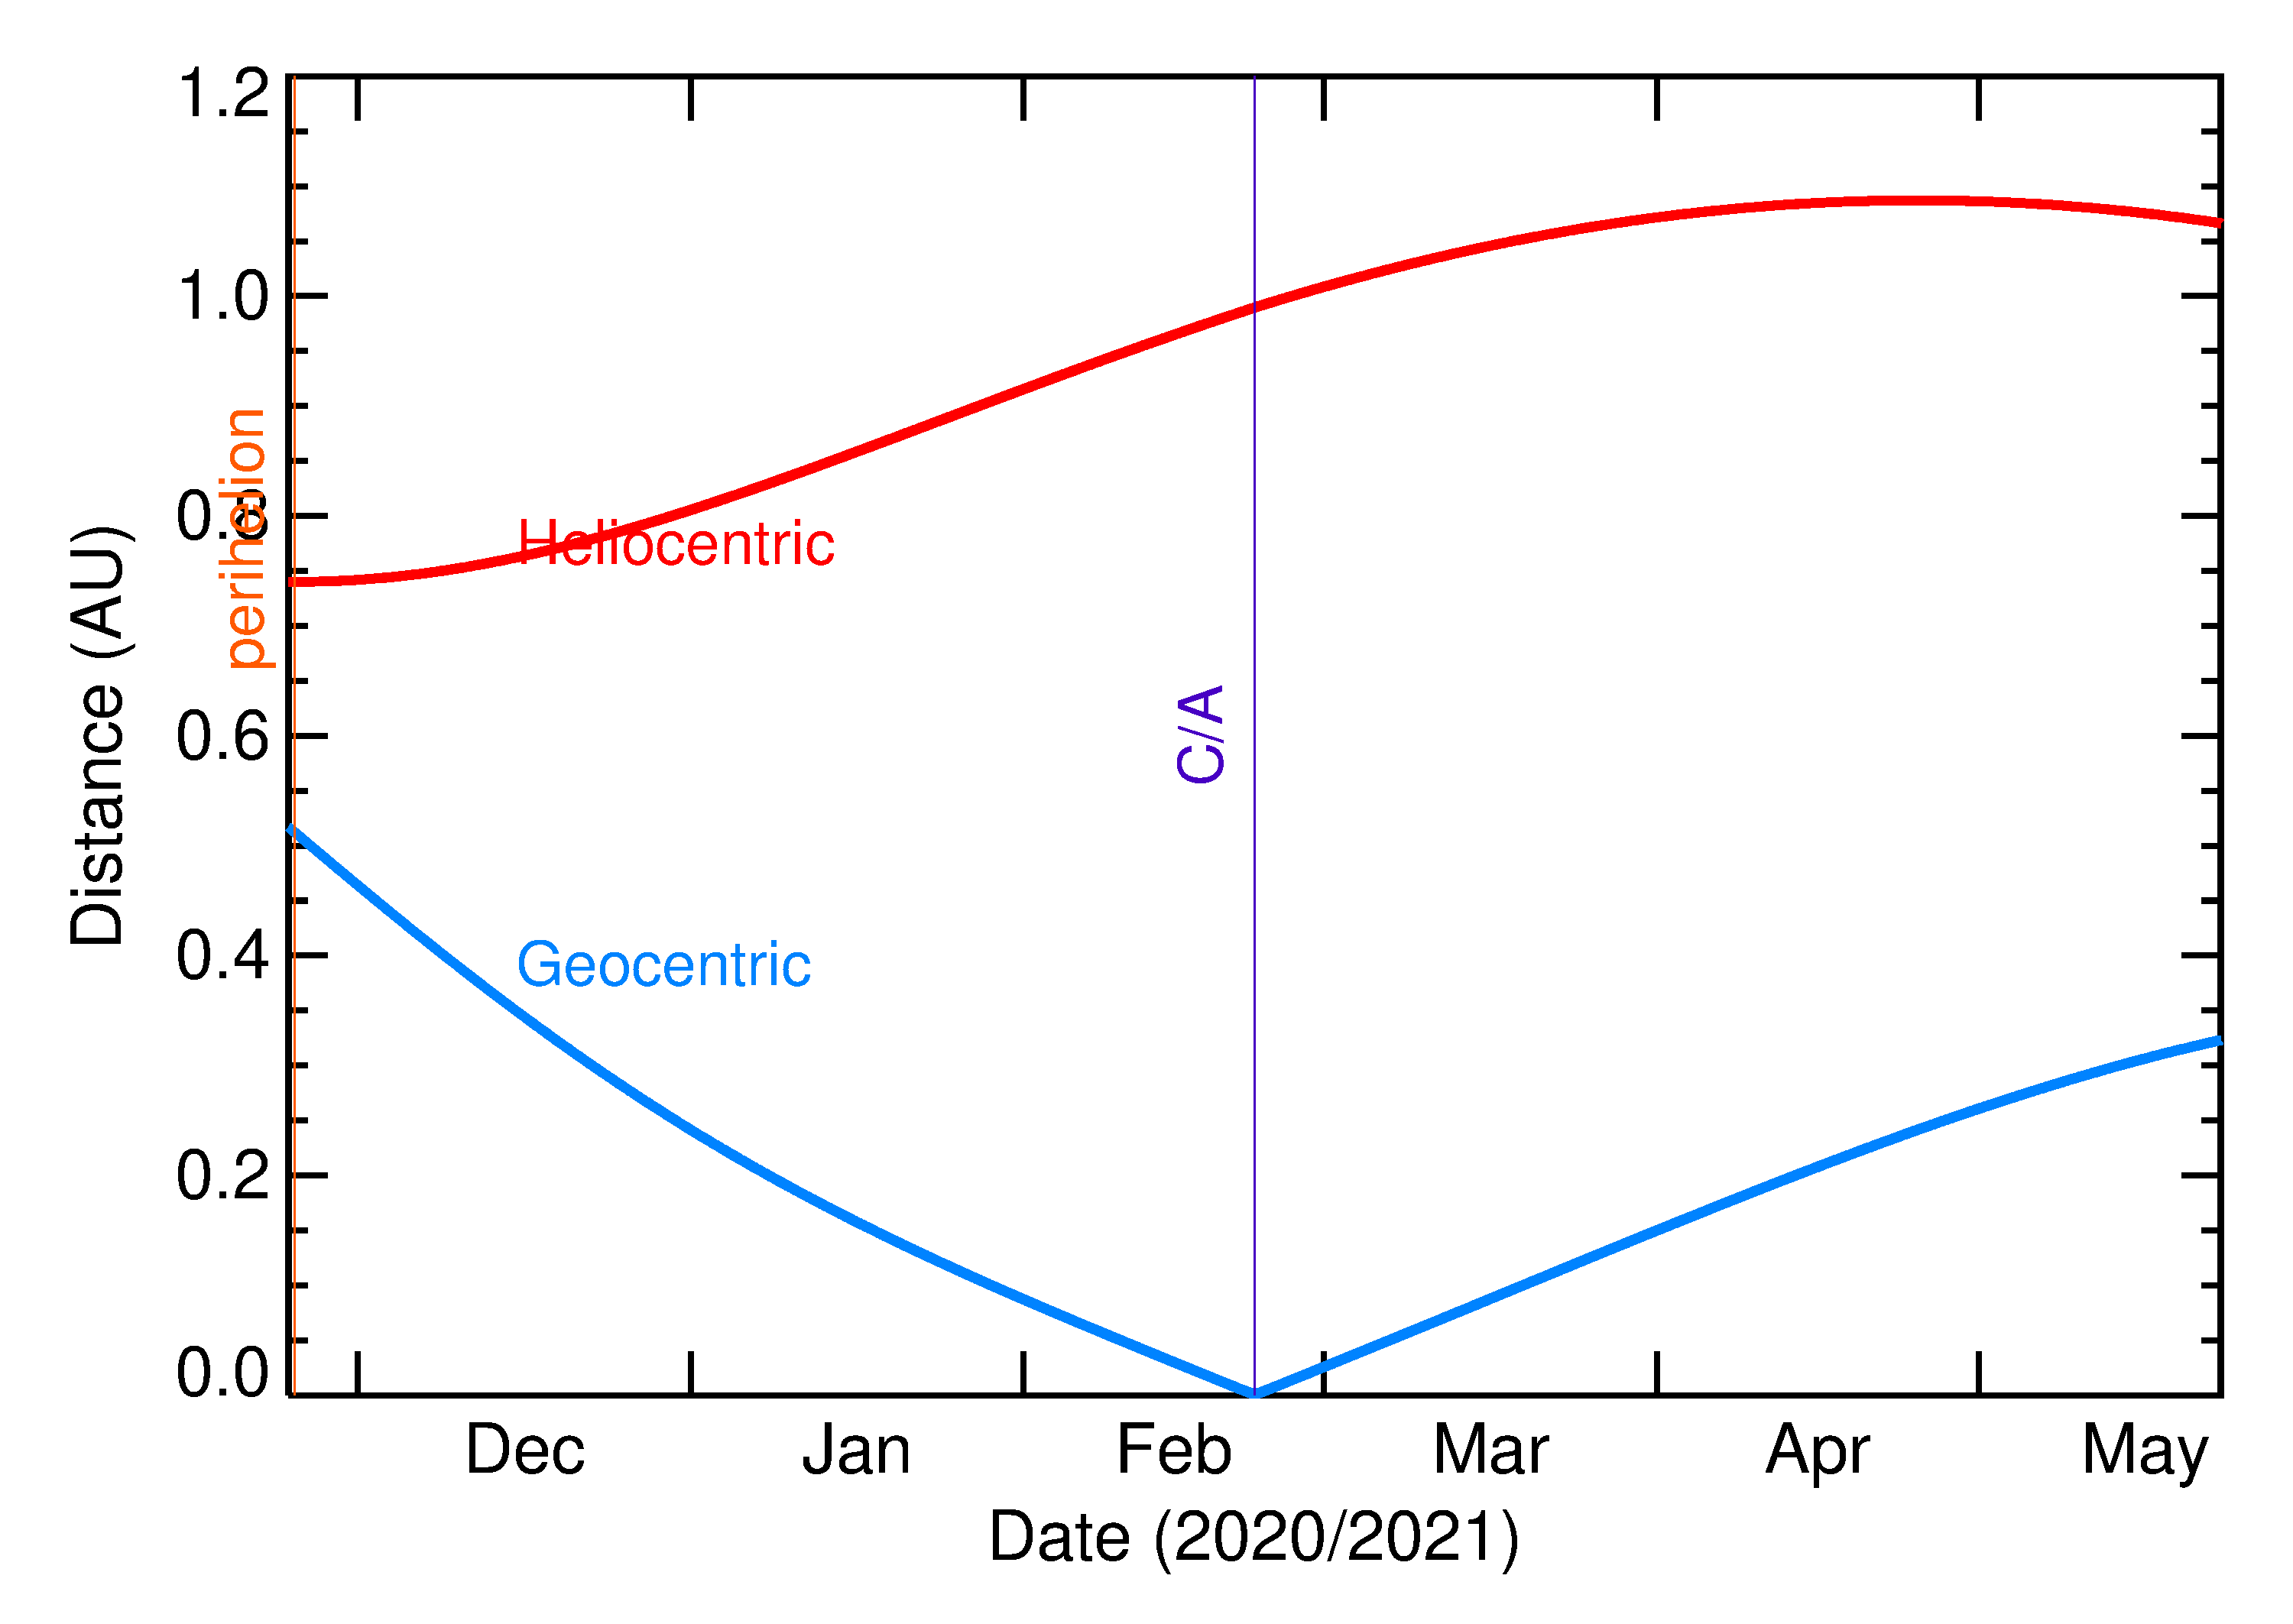 Heliocentric and Geocentric Distances of 2021 DA2 in the months around closest approach